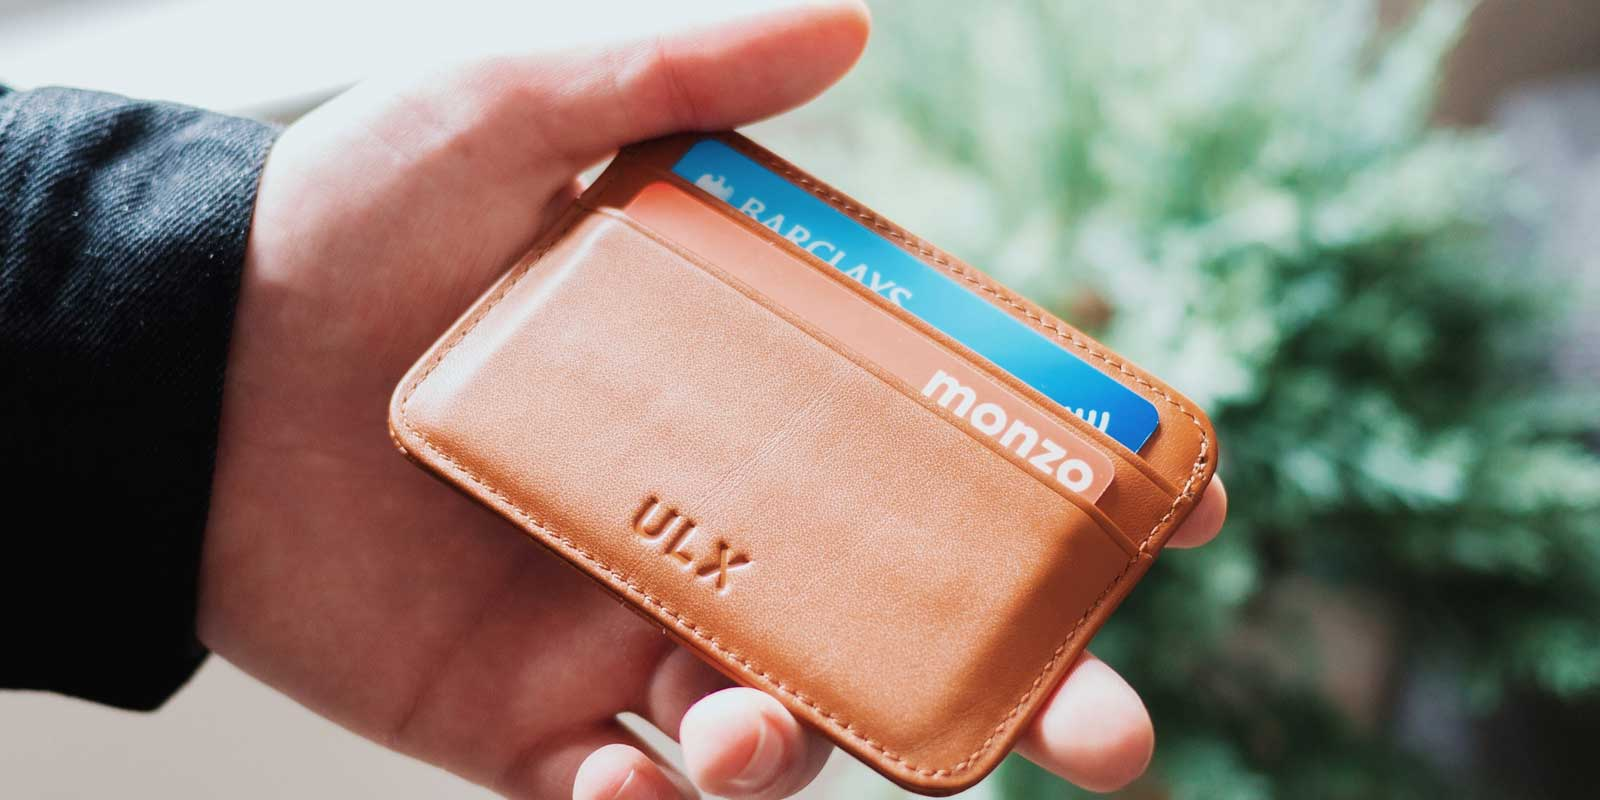 Man holding a small brown wallet with 2 credit cards in it.